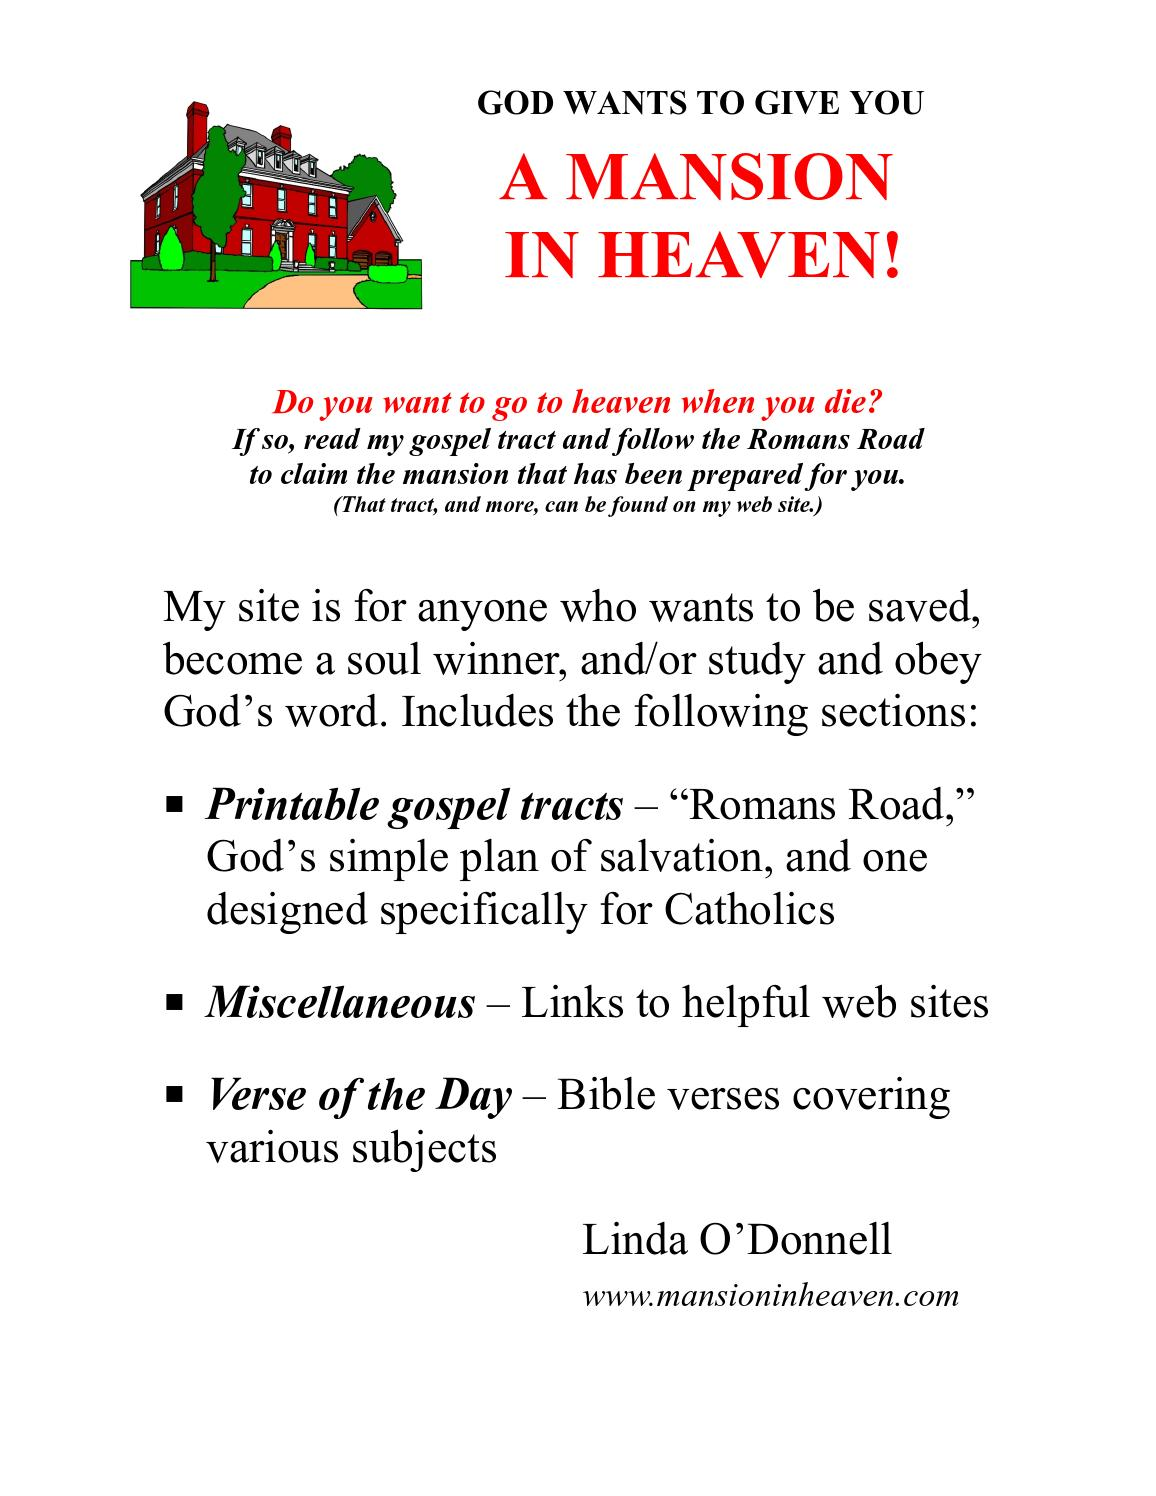 image about Simple Plan of Salvation Printable identify God Desires towards Supply On your own a Mansion inside of Heaven! via Linda O